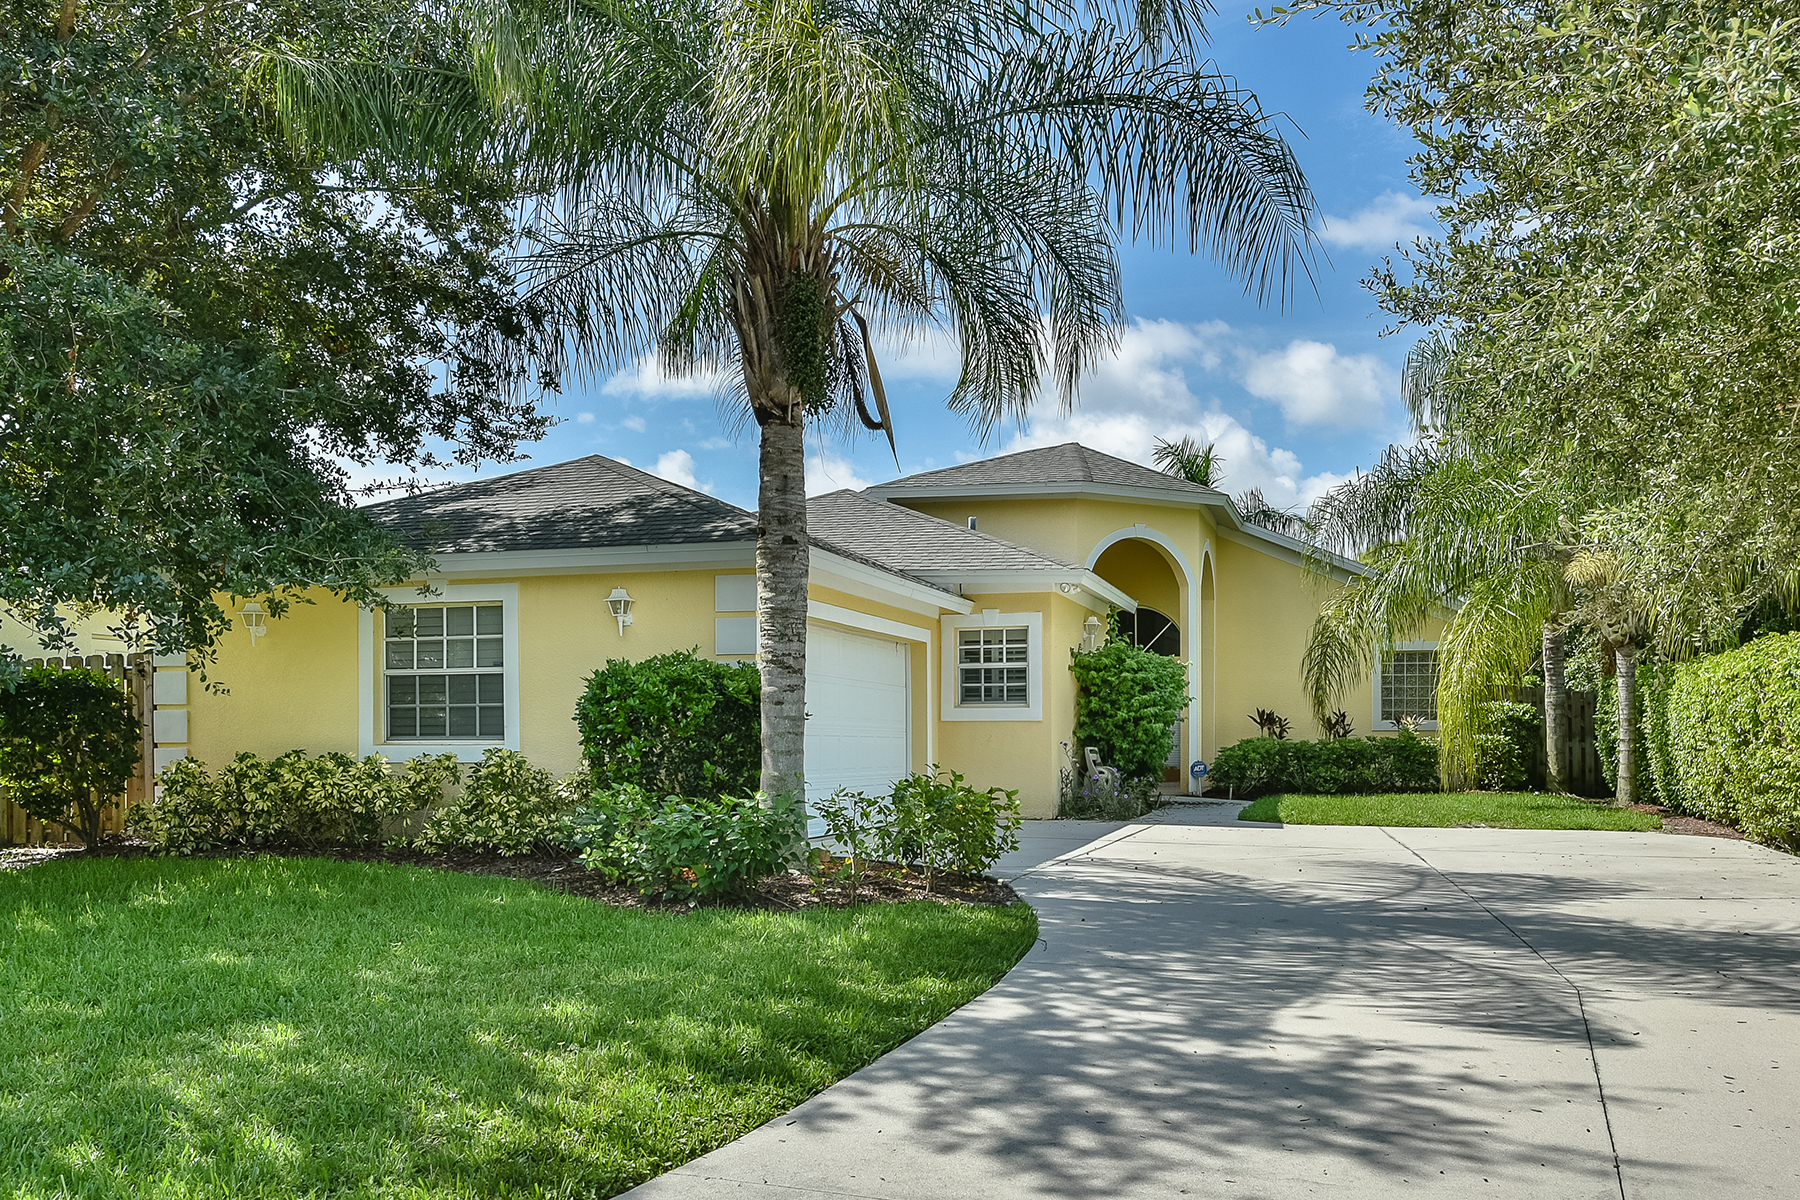 Single Family Home for Sale at TACOMA PARK 1180 29th Ave N Naples, Florida 34103 United States